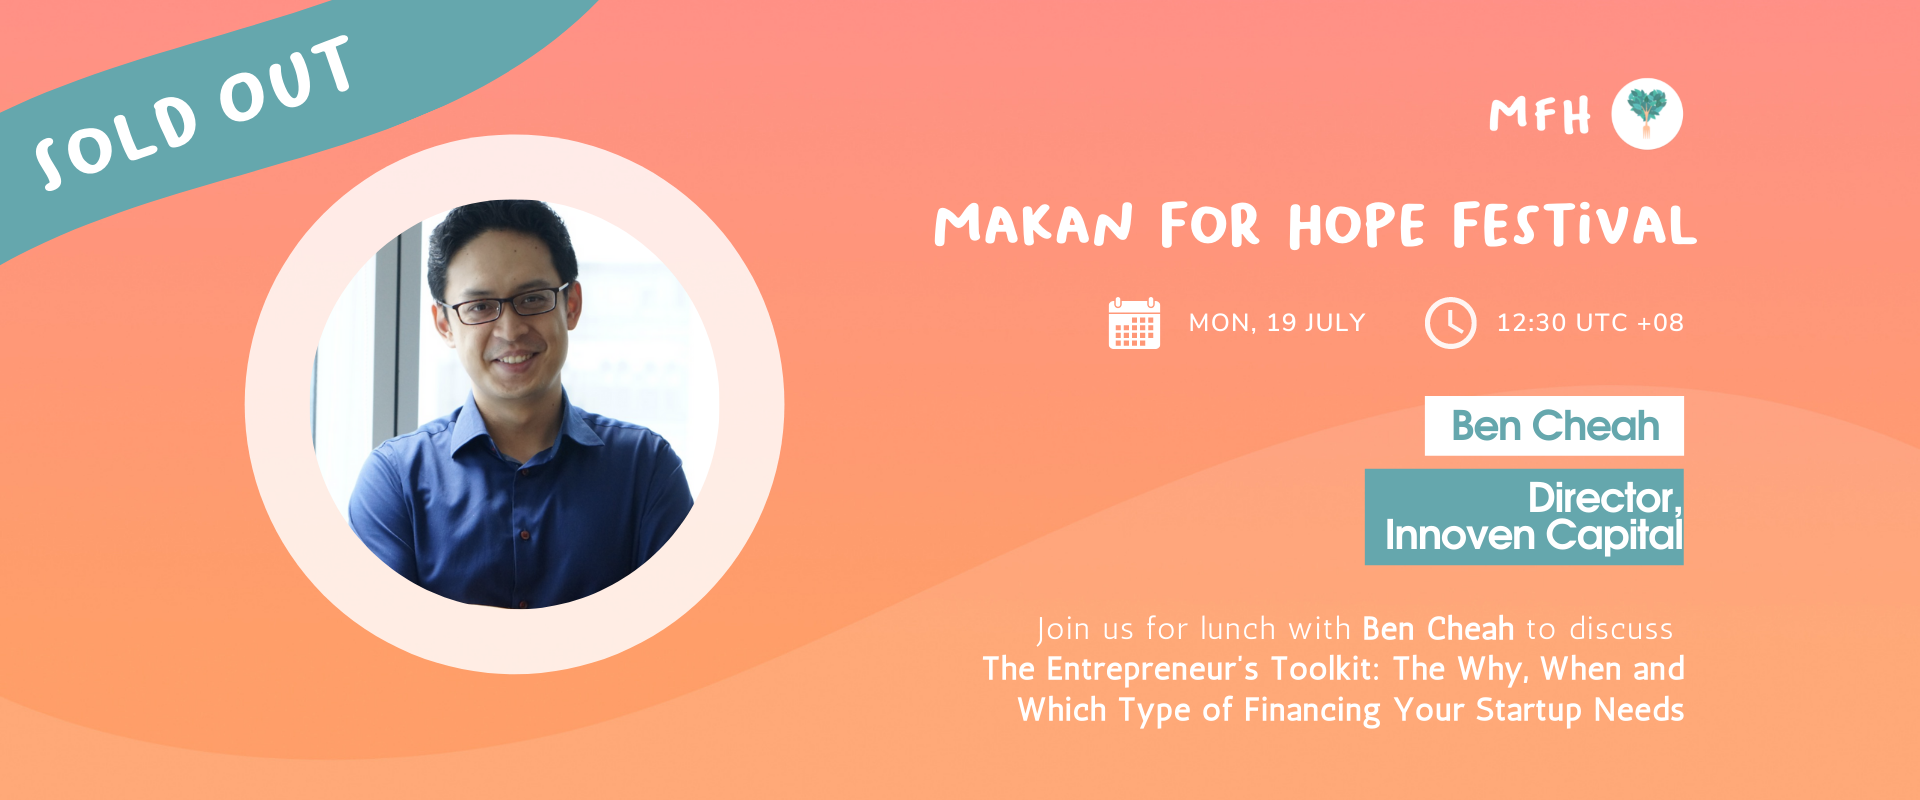 [SOLD OUT!] Ben Cheah - The Entrepreneur's Toolkit: The Why, When and Which Type of Financing Your Startup Needs Banner Image